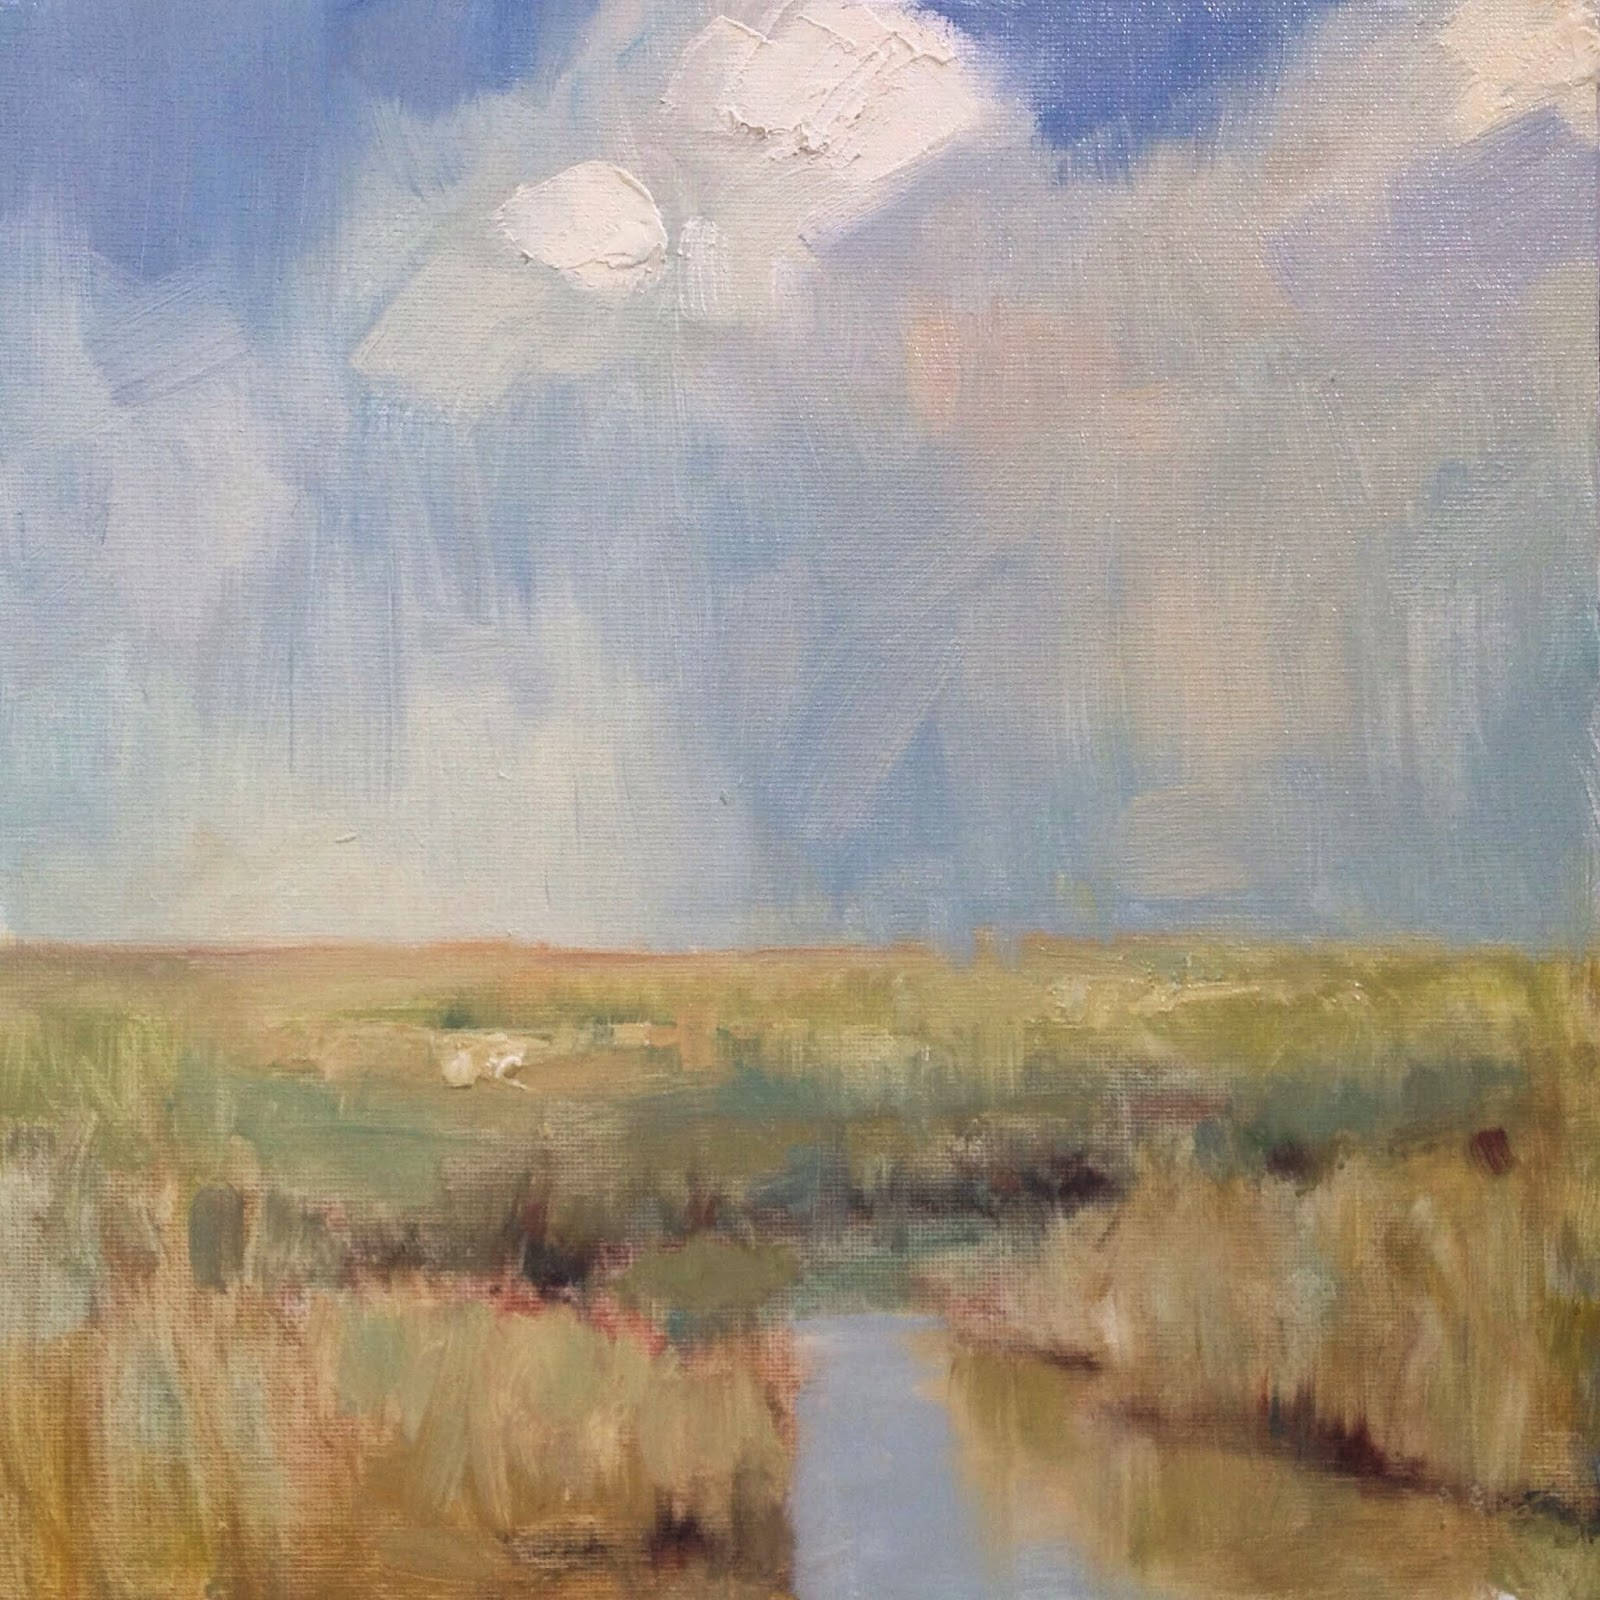 Oil Landscape Painting Of A Cape Cod Marsh Under Stormy Sky By Artist Steve Allrich